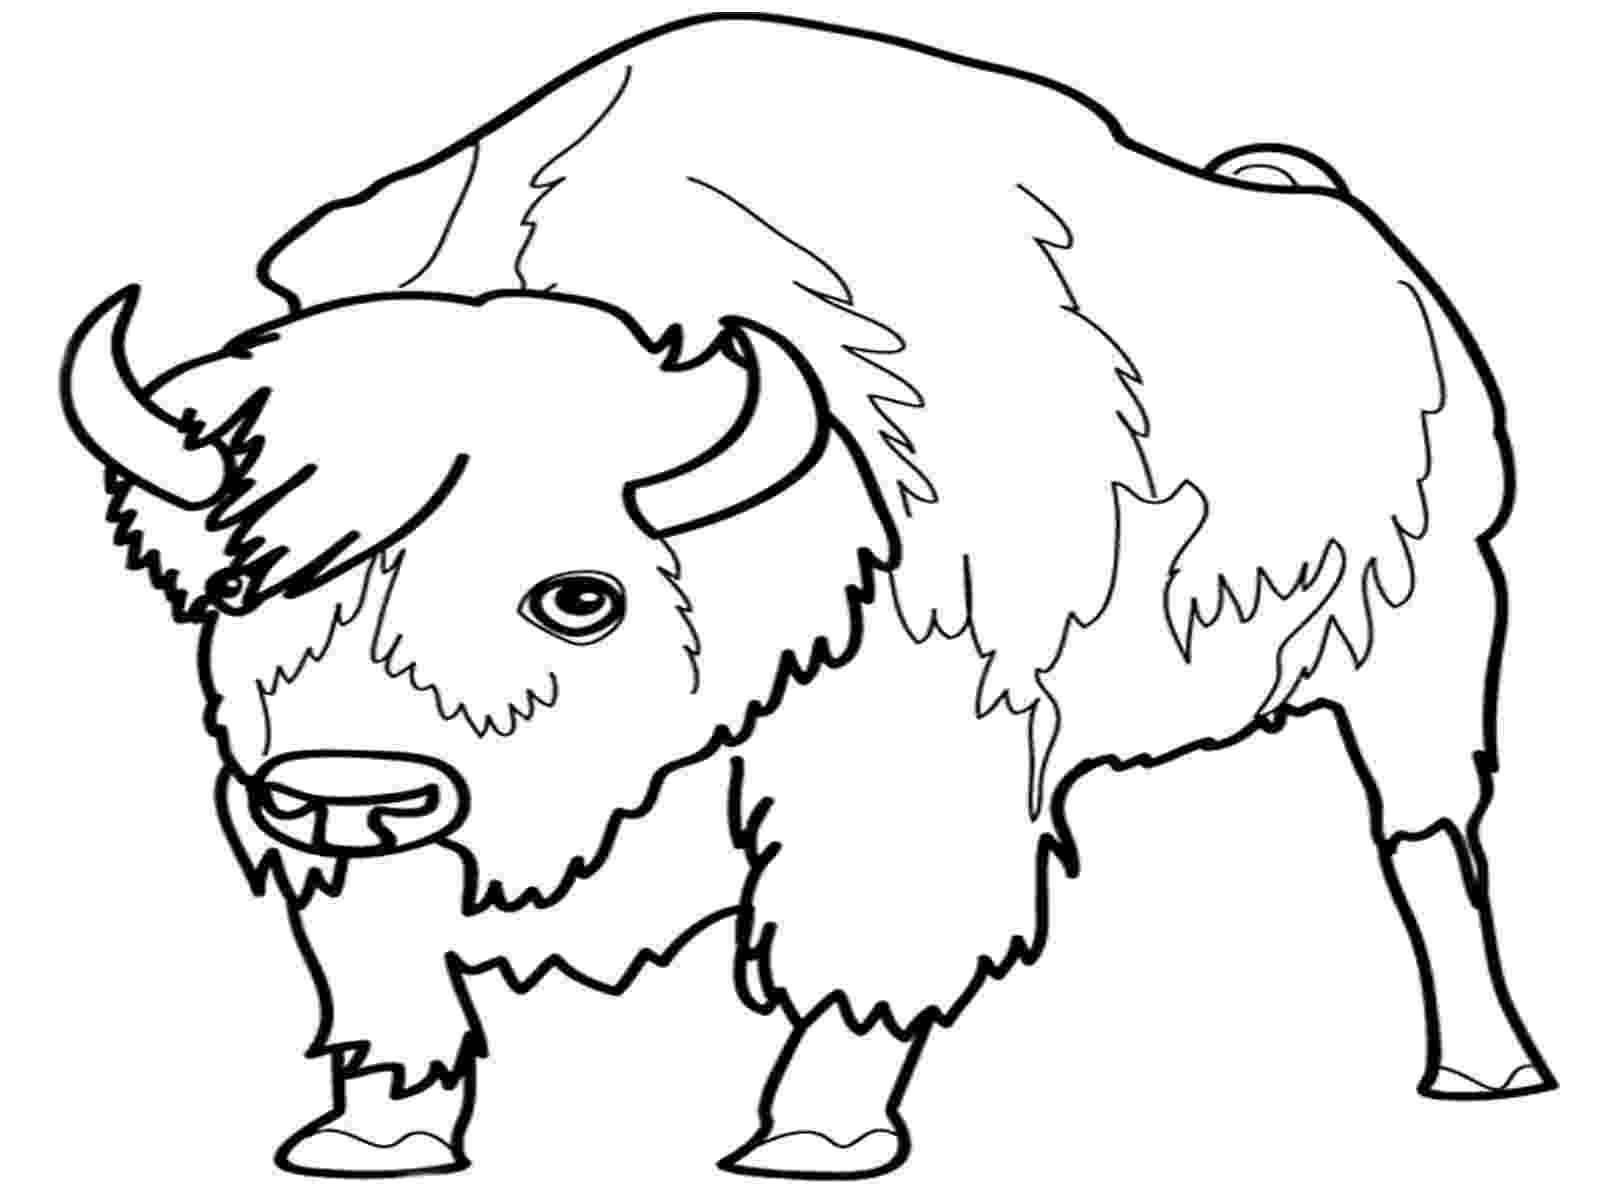 coloring pages animals realistic realistic sea life coloring pages google search pages animals realistic coloring